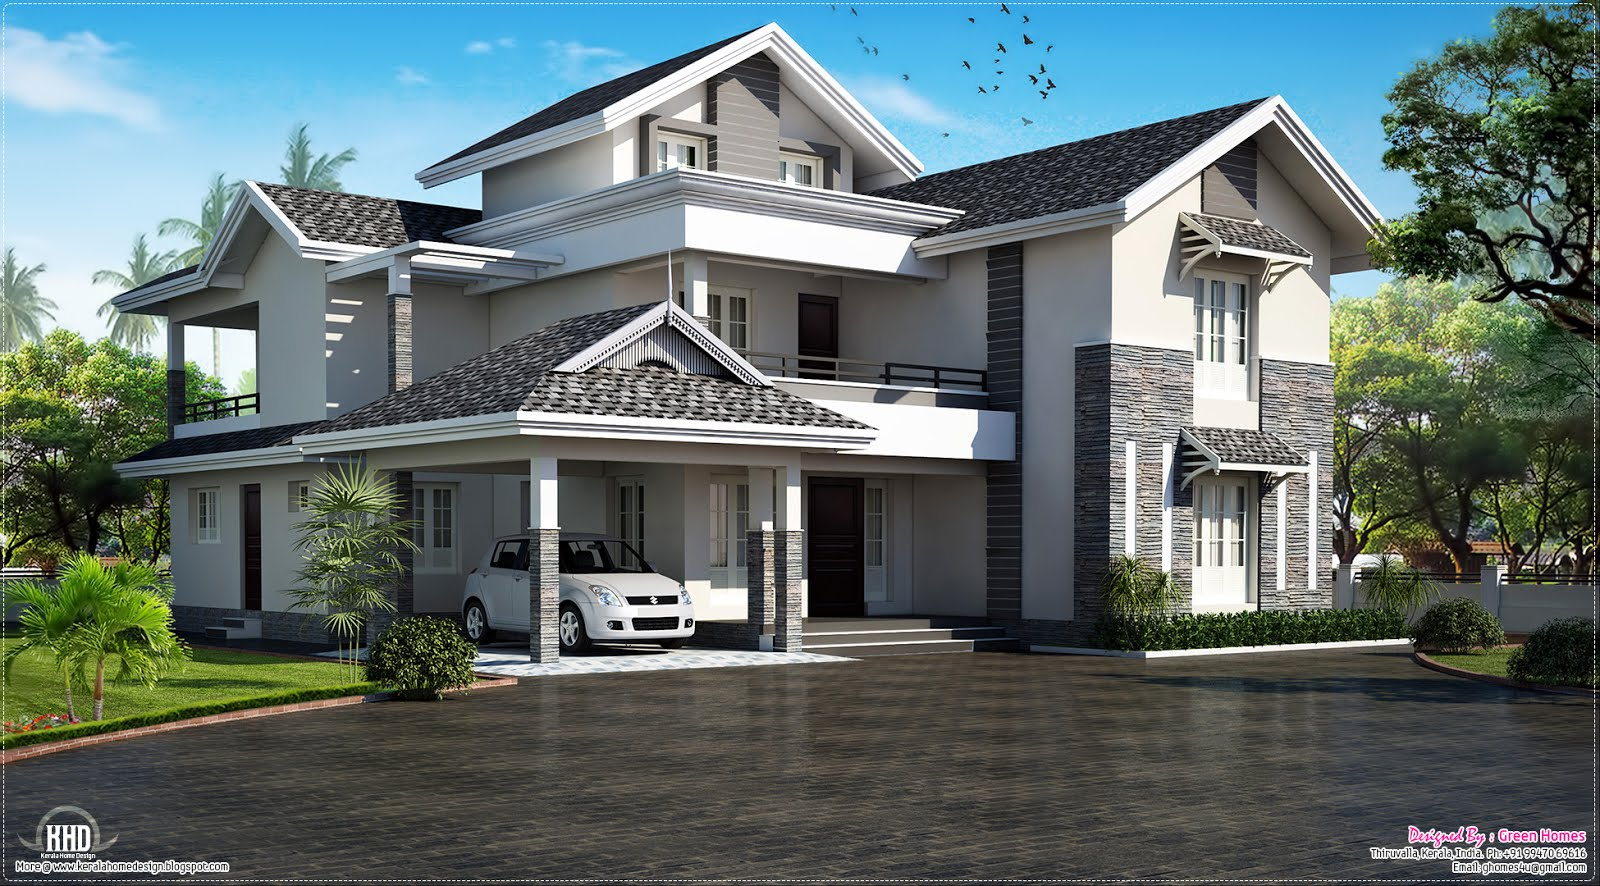 Modern sloping roof house villa design kerala home design and floor plans - Design house ...